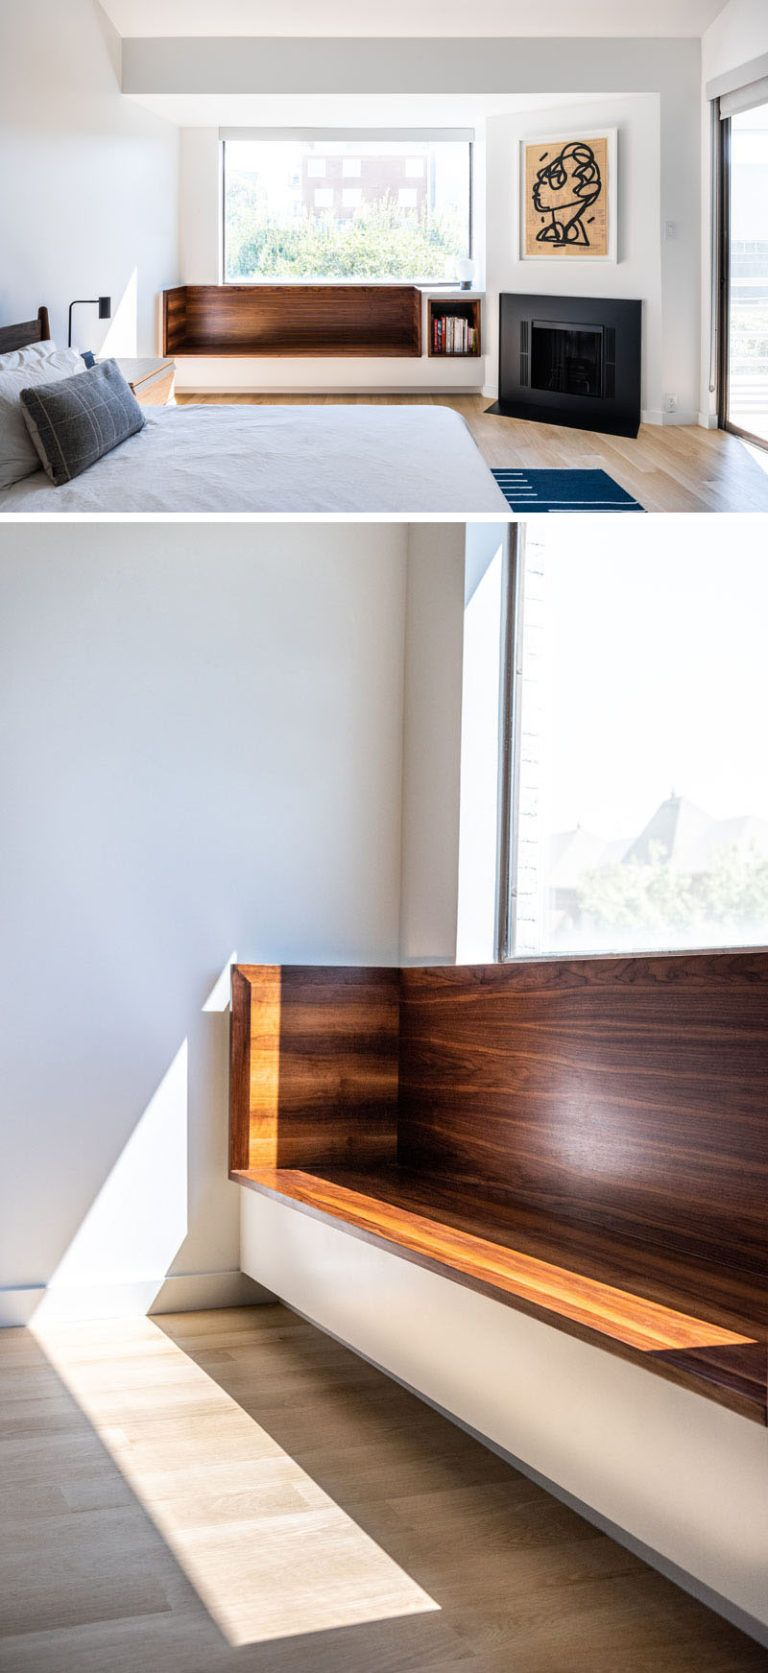 Design Detail A Built In Window Seat With Shelving Was Added To